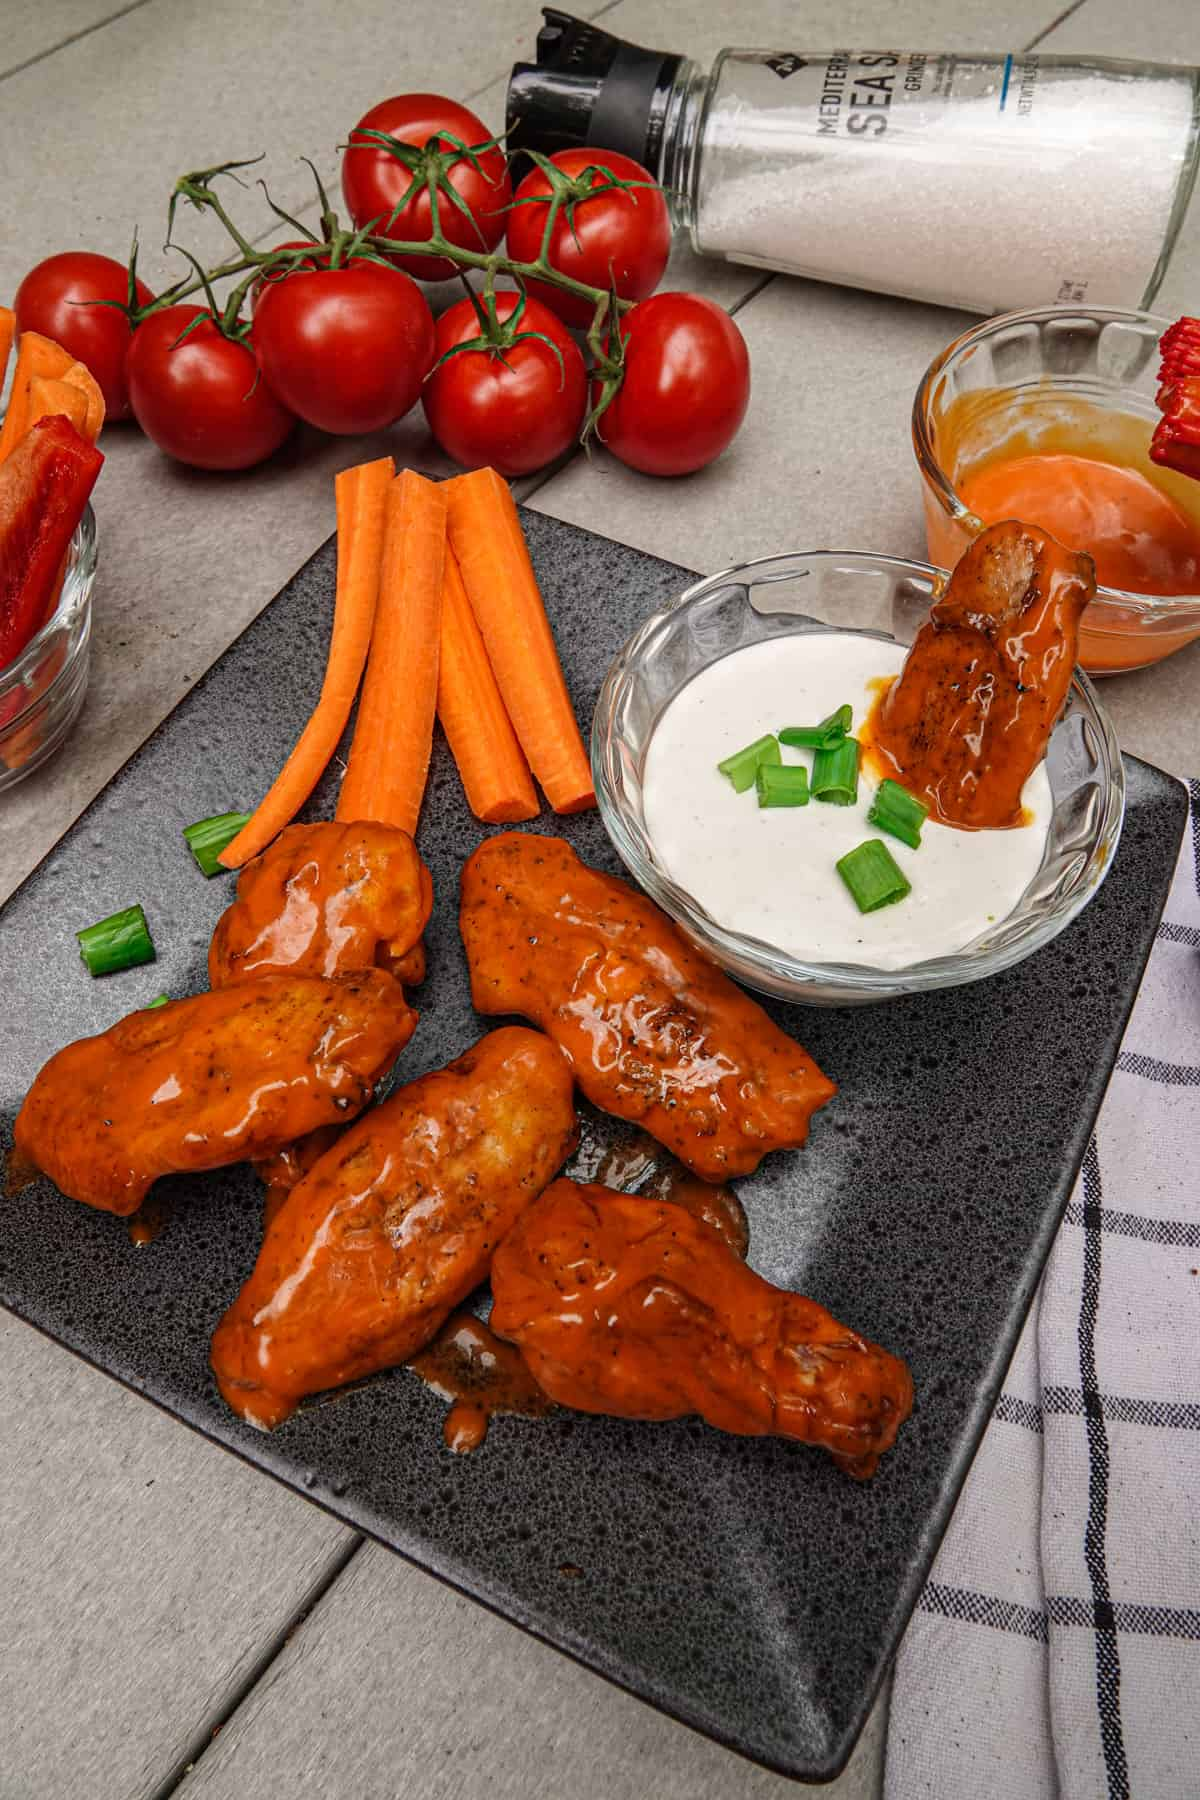 Chicken wings on plate with ranch sauce, carrots, and tomatoes